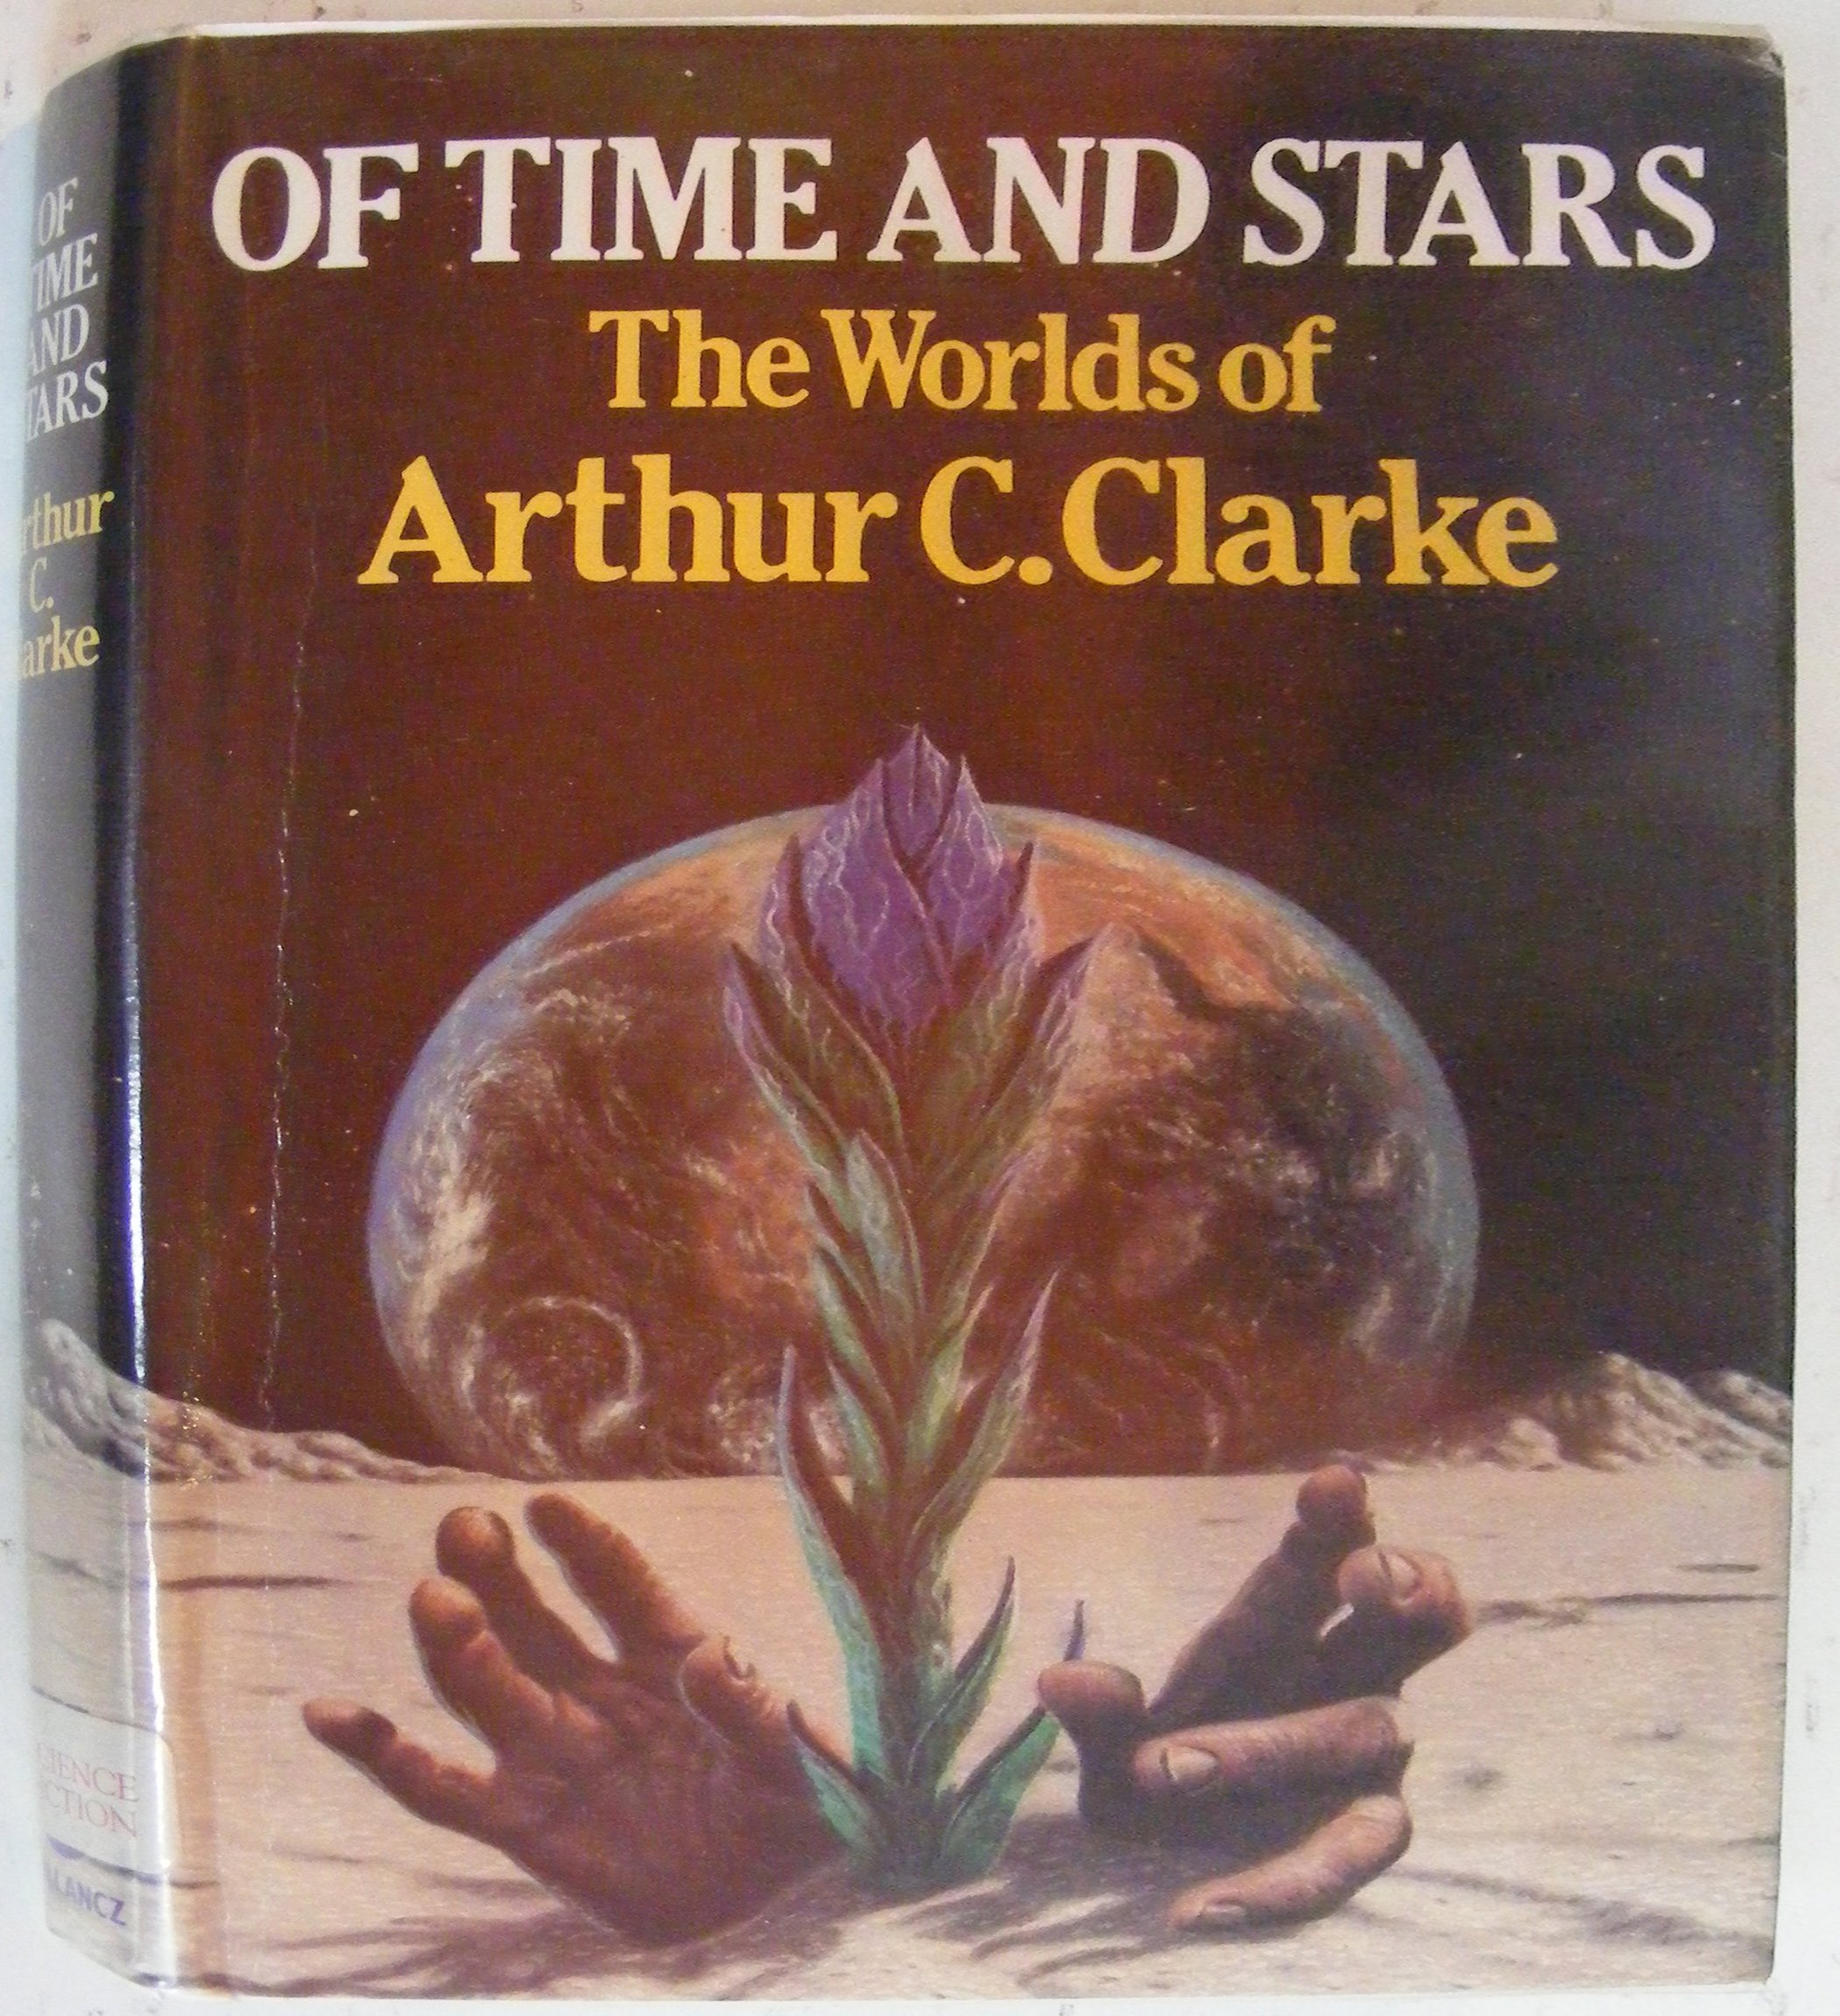 Of Time and Stars: The Worlds of Arthur C.Clarke